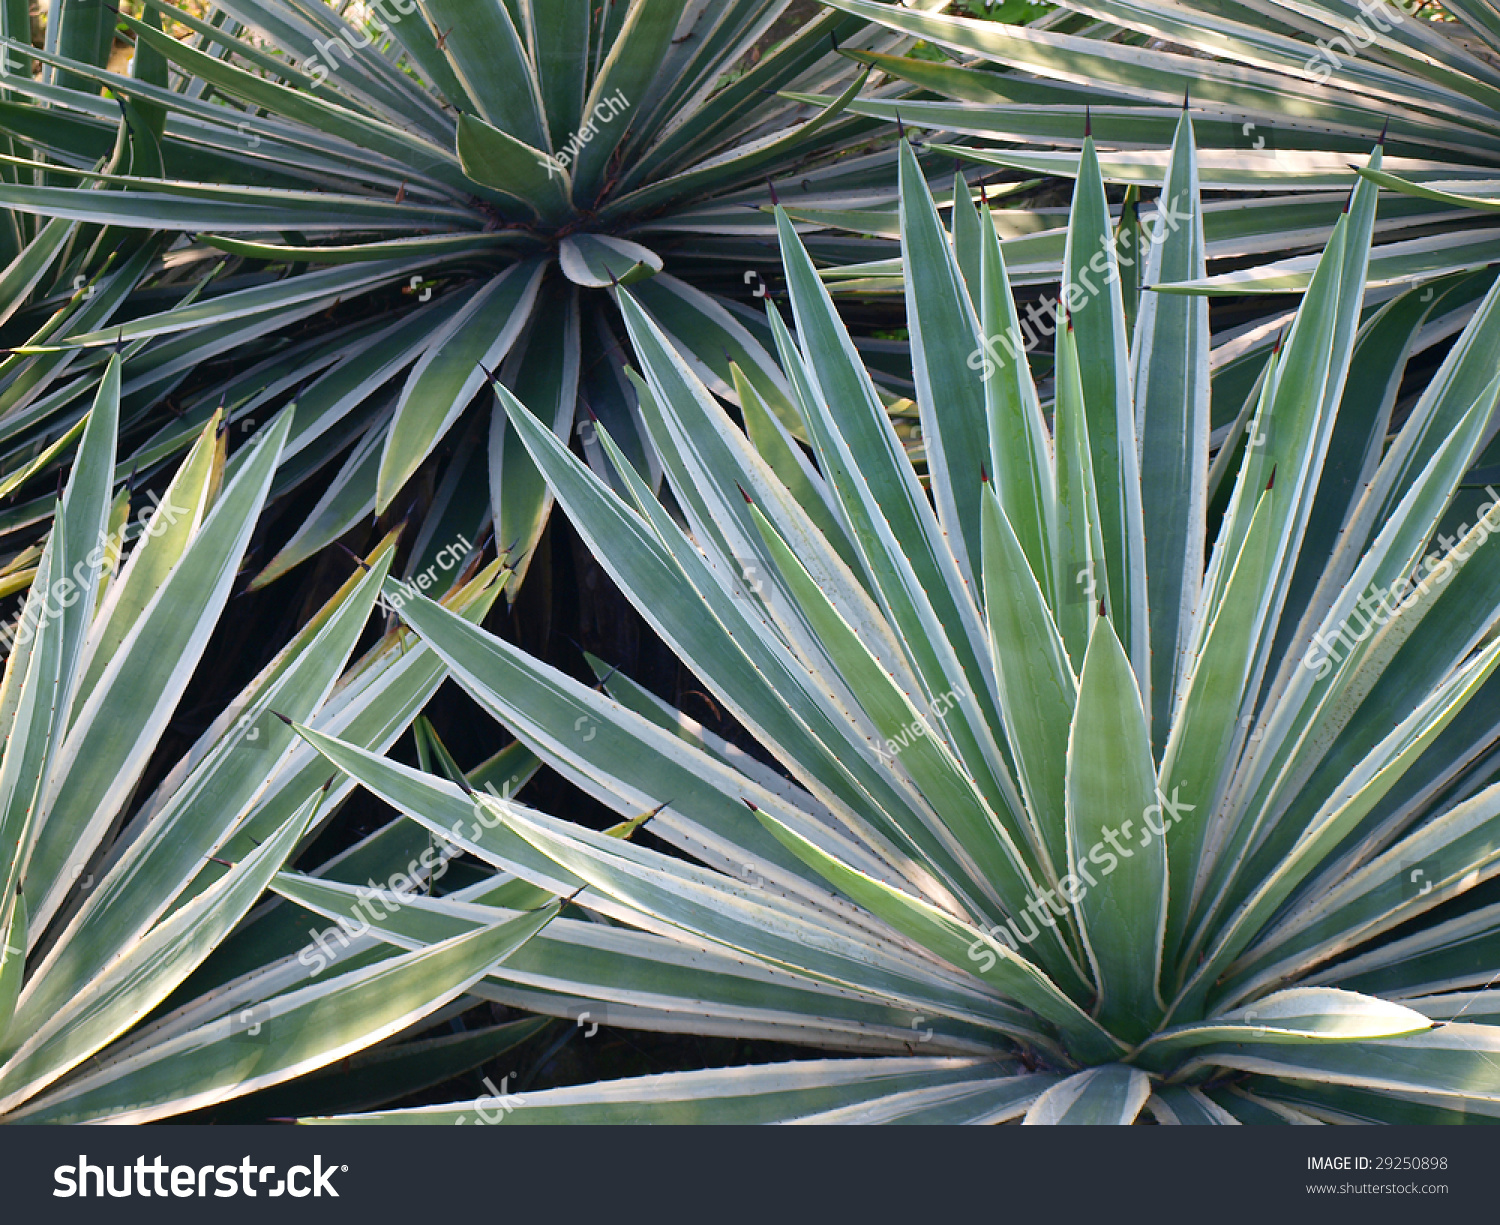 tropical yucca plants stock photo 29250898 shutterstock. Black Bedroom Furniture Sets. Home Design Ideas